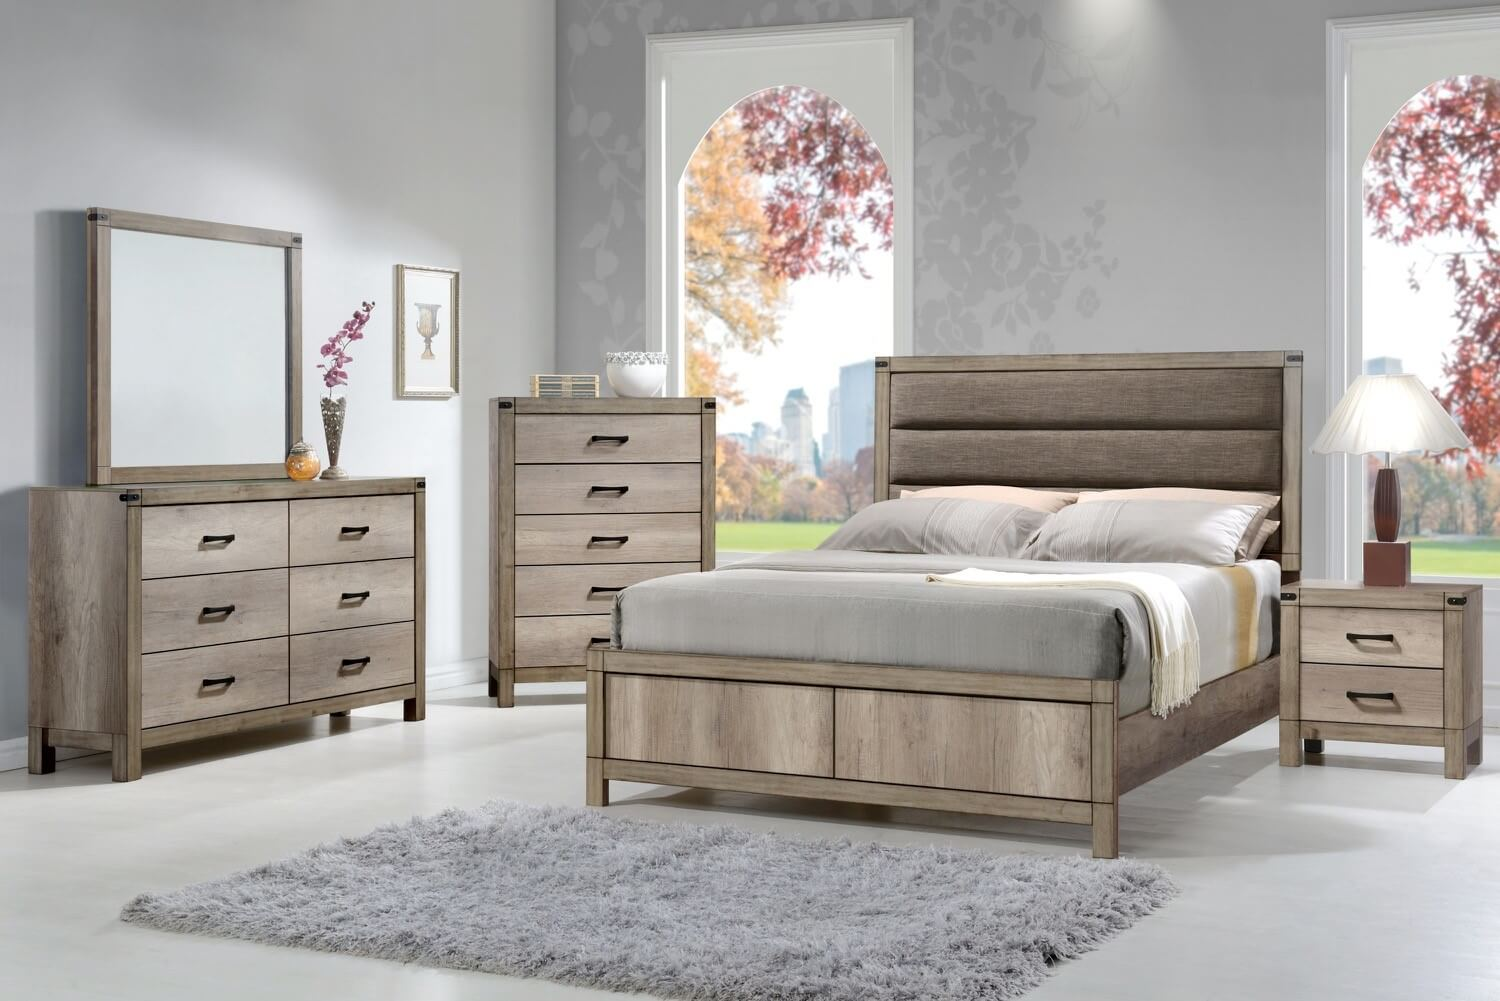 Matteo rustic bedroom set by crown mark bedroom furniture for Great bedroom furniture